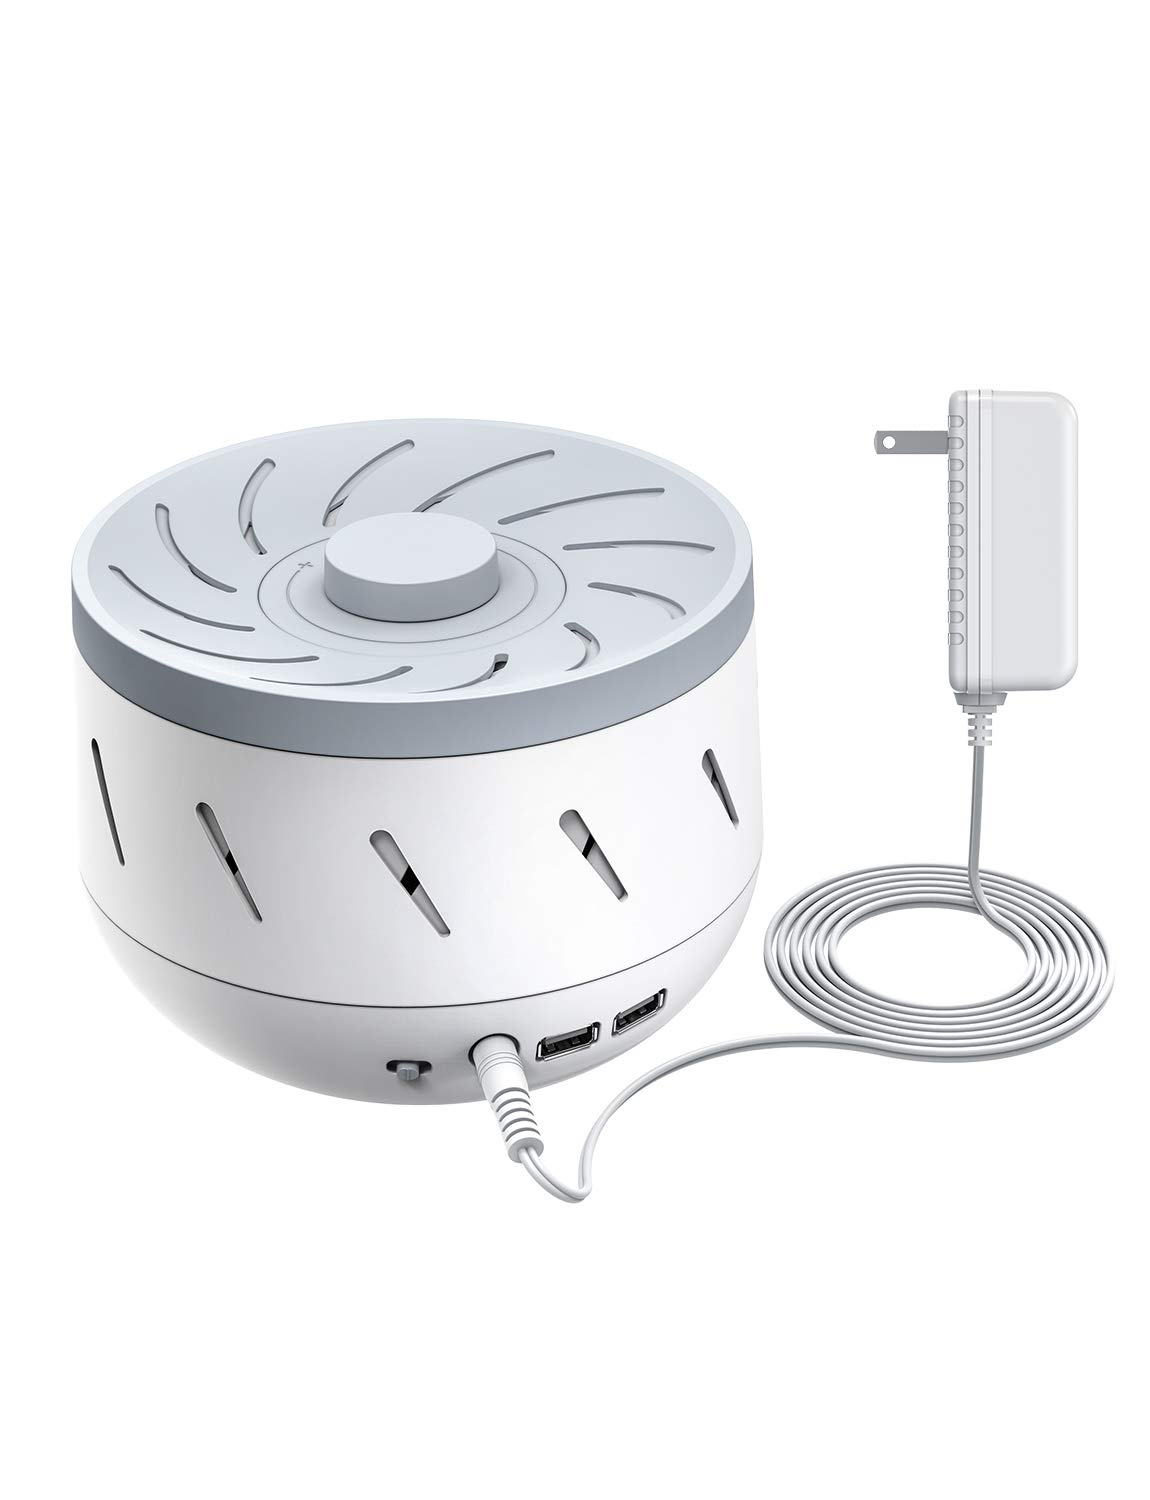 Mpow White Noise Sound Machine, Fan Noise Machine with 85 DB Adjusted Volume, White Noise Masking Sound Therapy for Baby, Sleep, Office Privacy, 2 USB Output, Auto Off Timer, AC Adapter Included